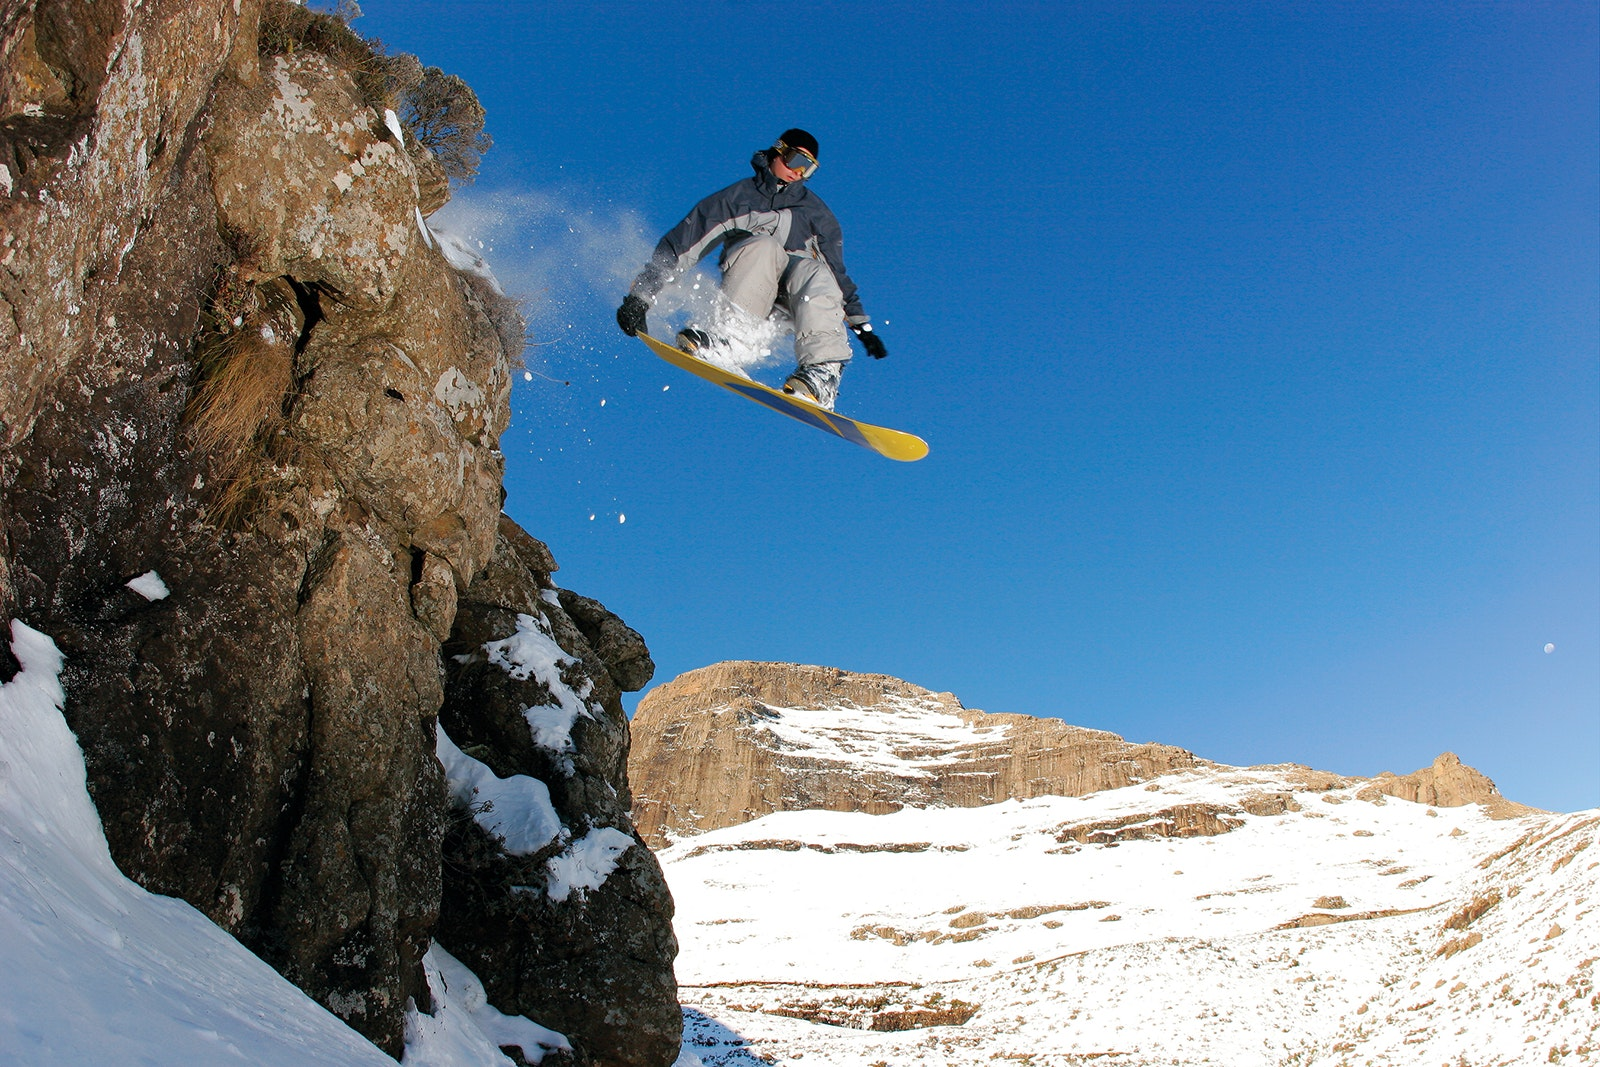 Yes, you can snowboard in Lesotho in June.